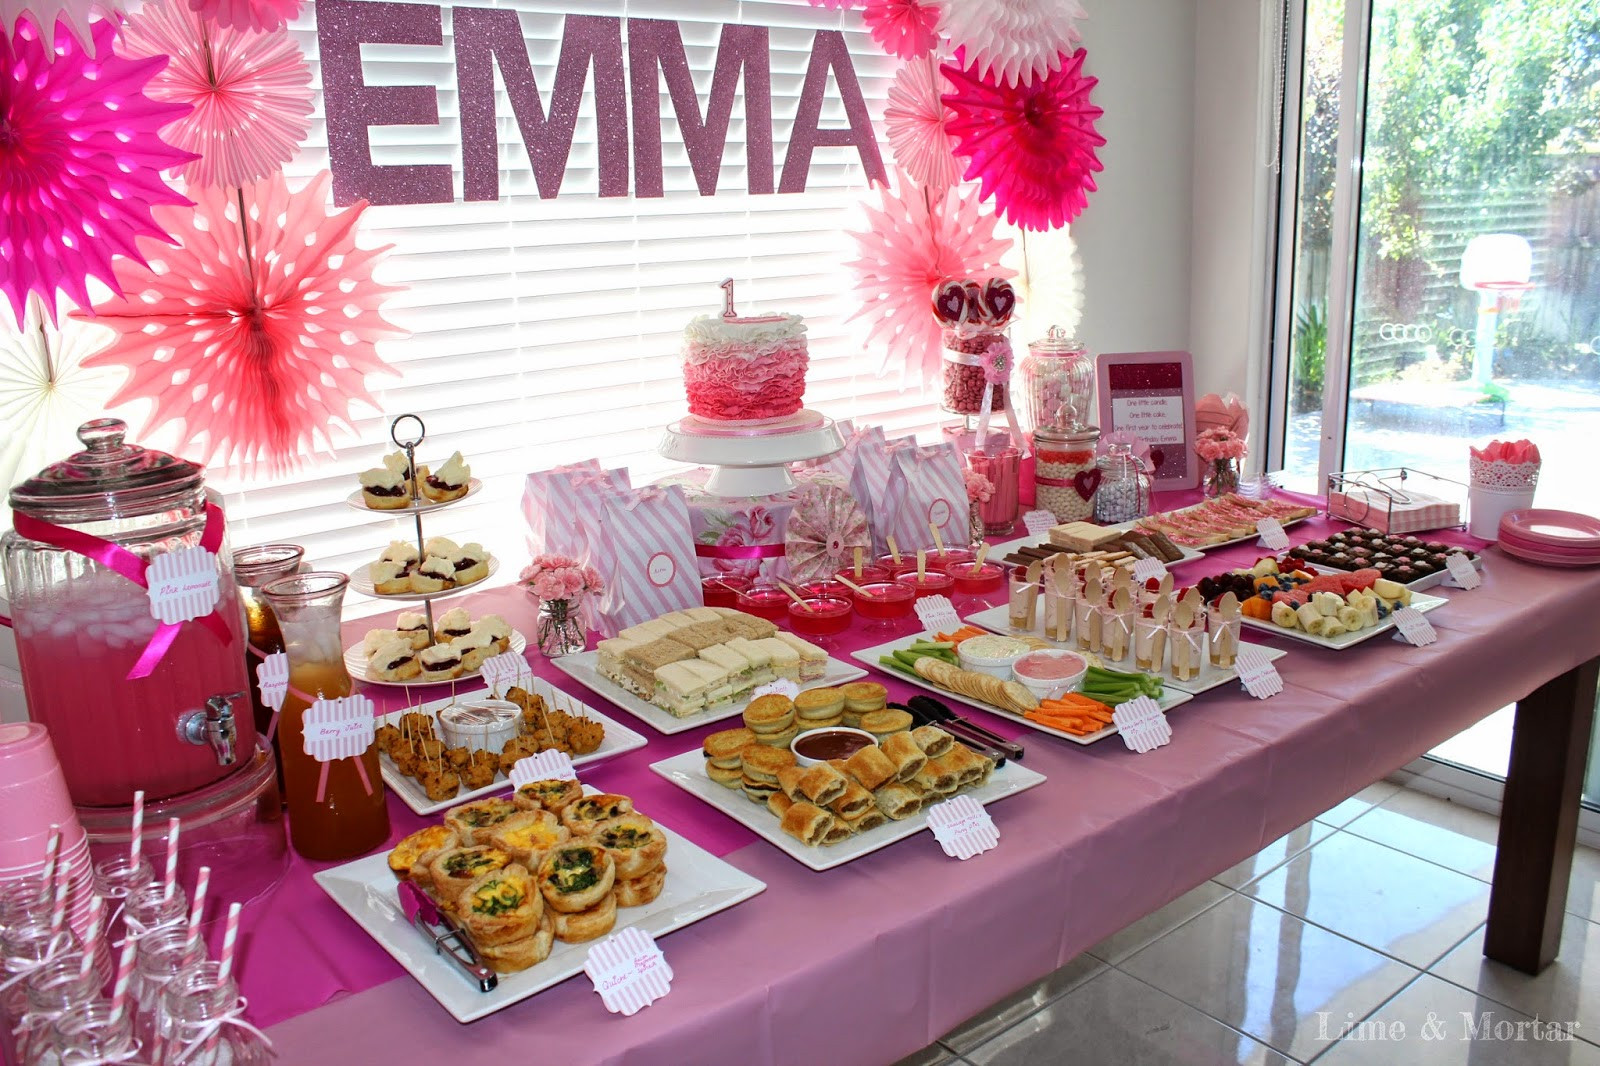 Pink Party Food Ideas  Lime & Mortar Kids Parties Pink Party